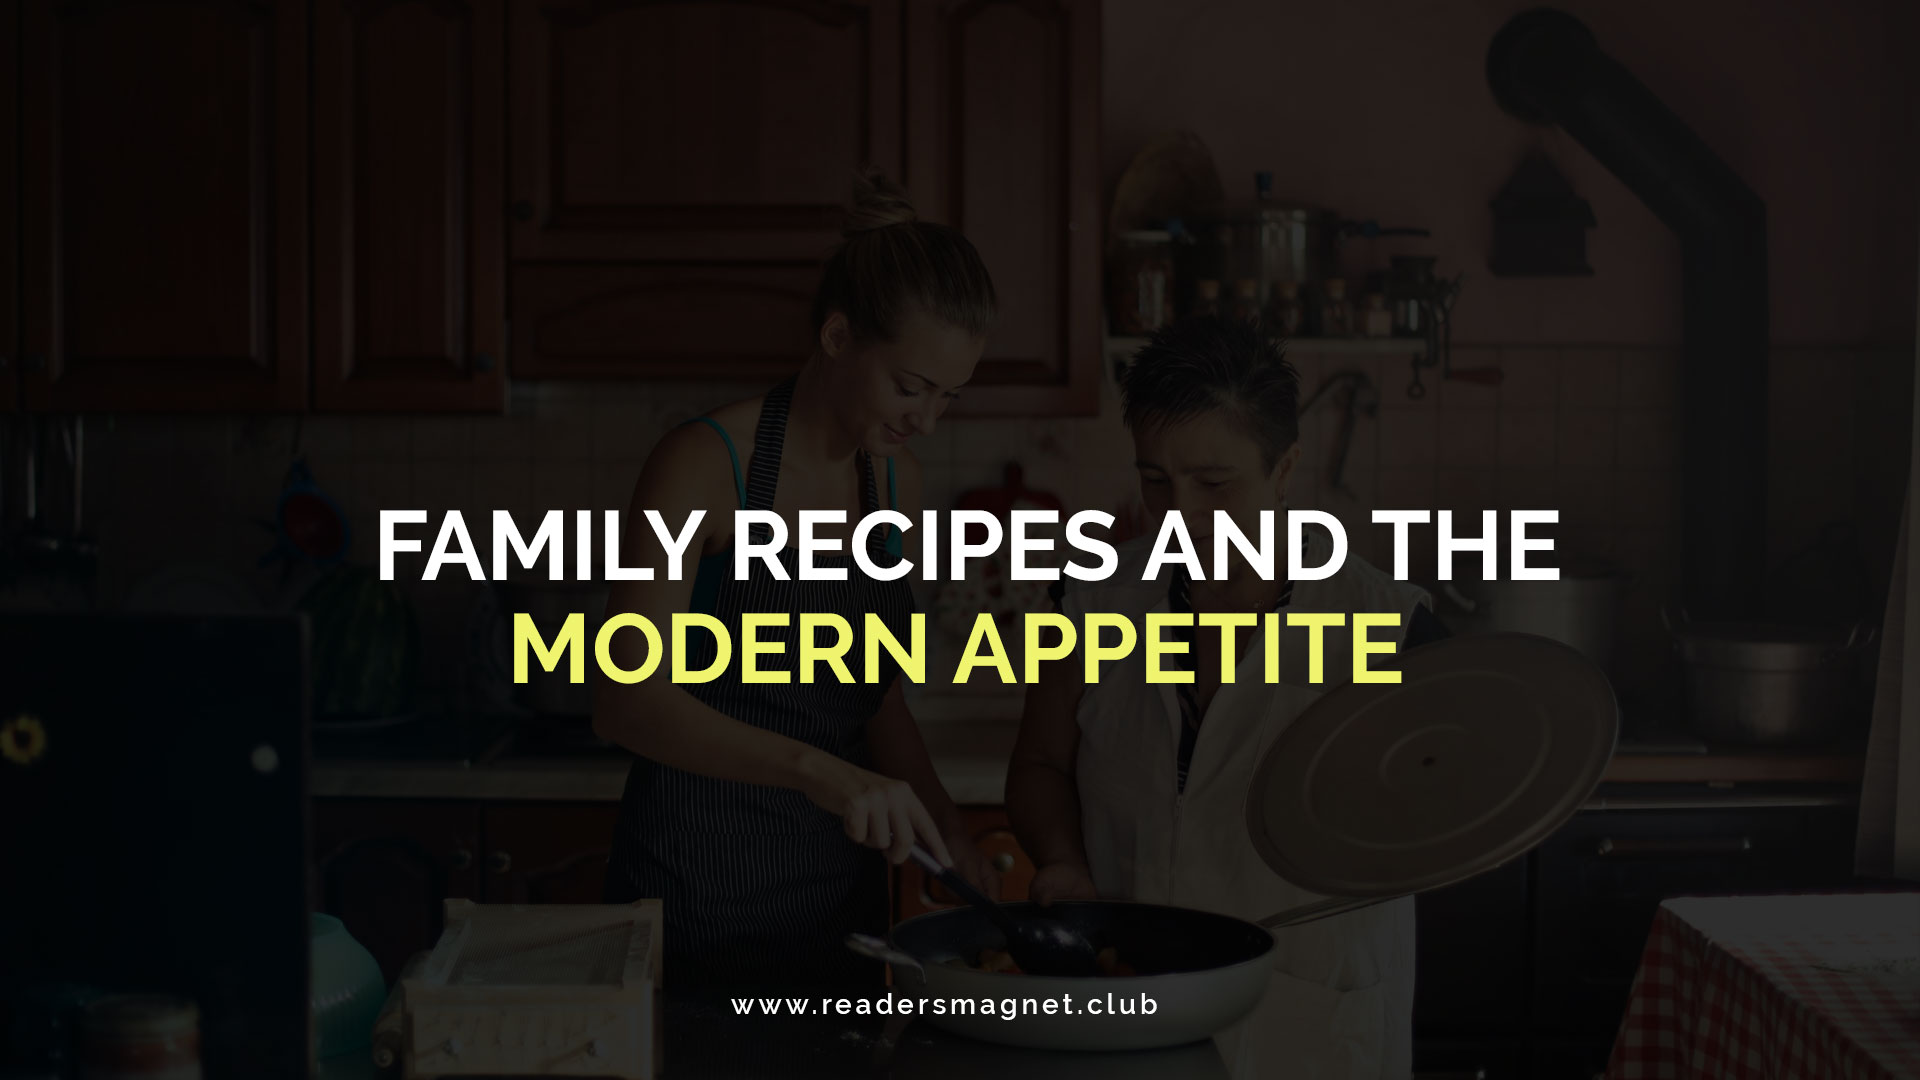 Family-Recipes-and-the-Modern-Appetite banner